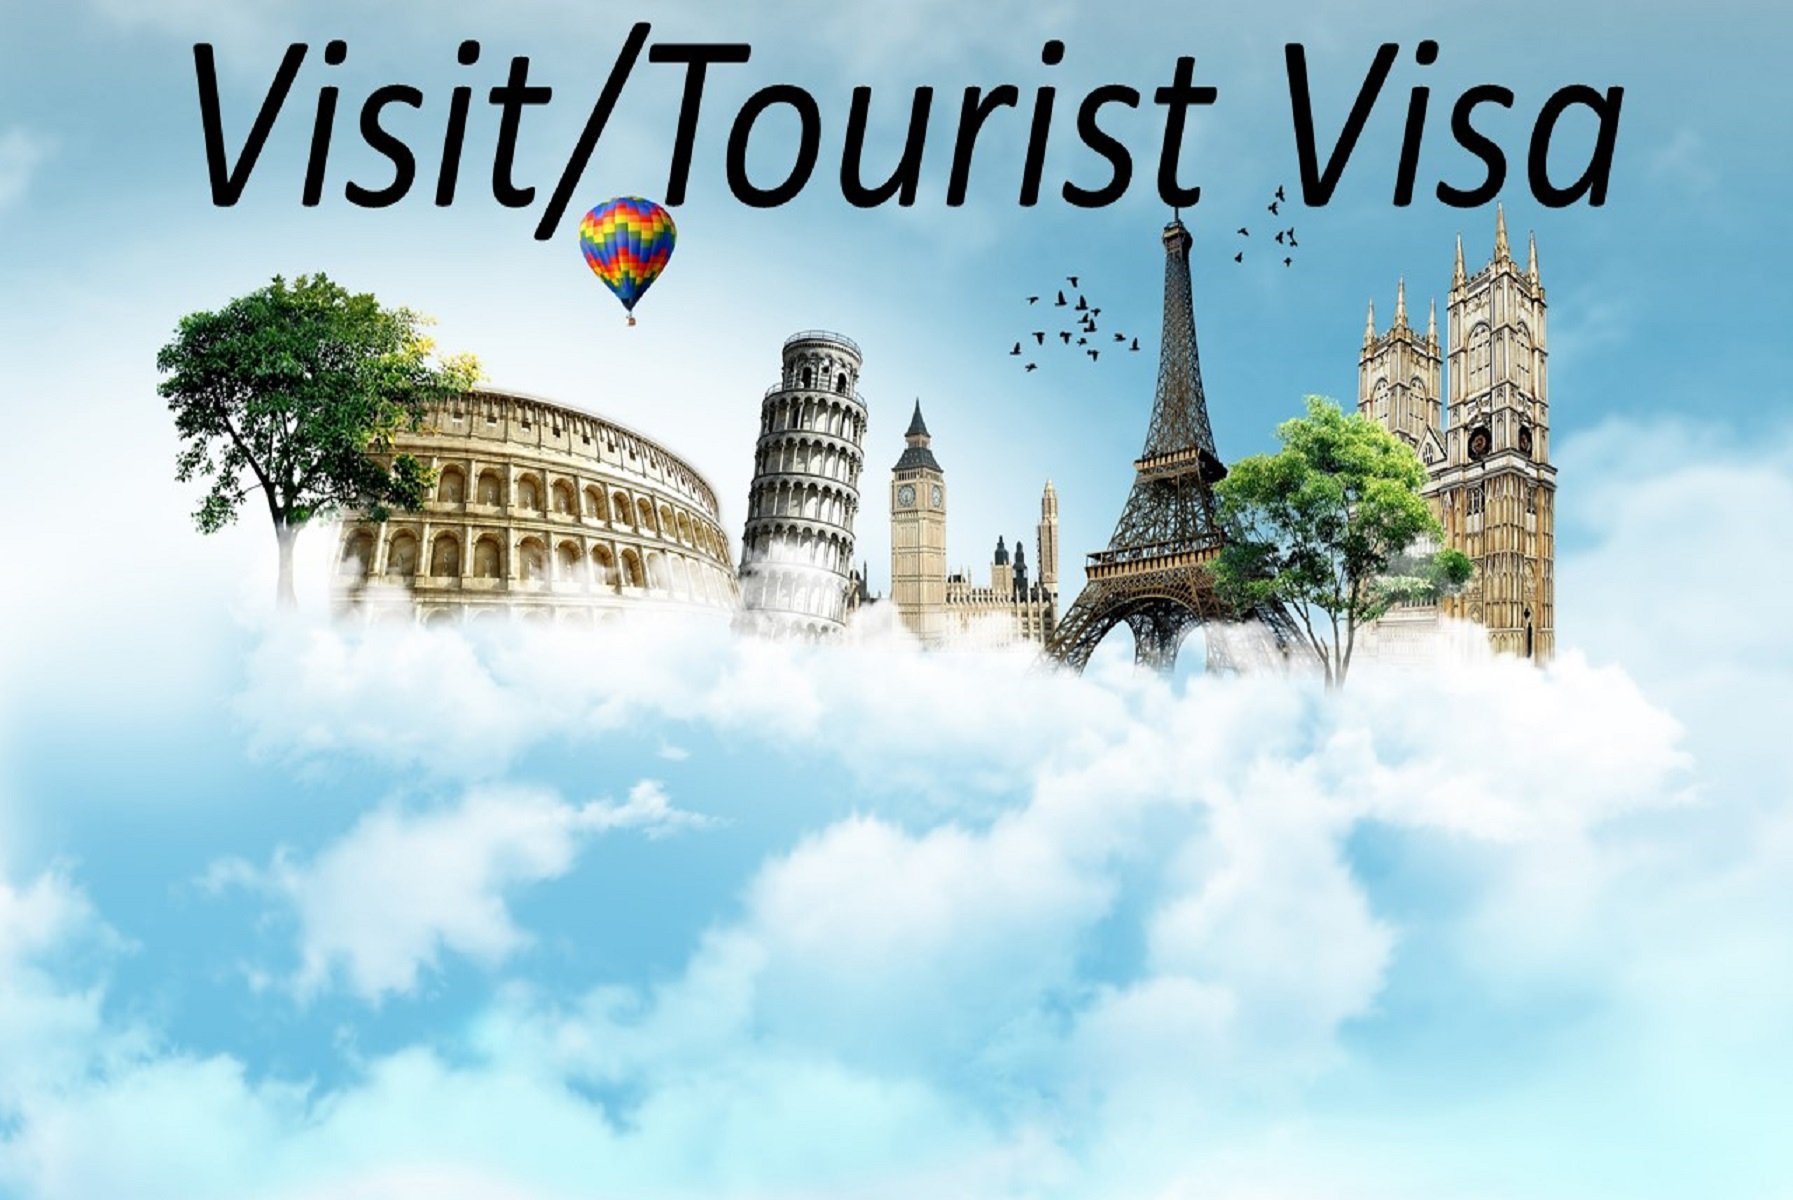 Tourist Visa Services